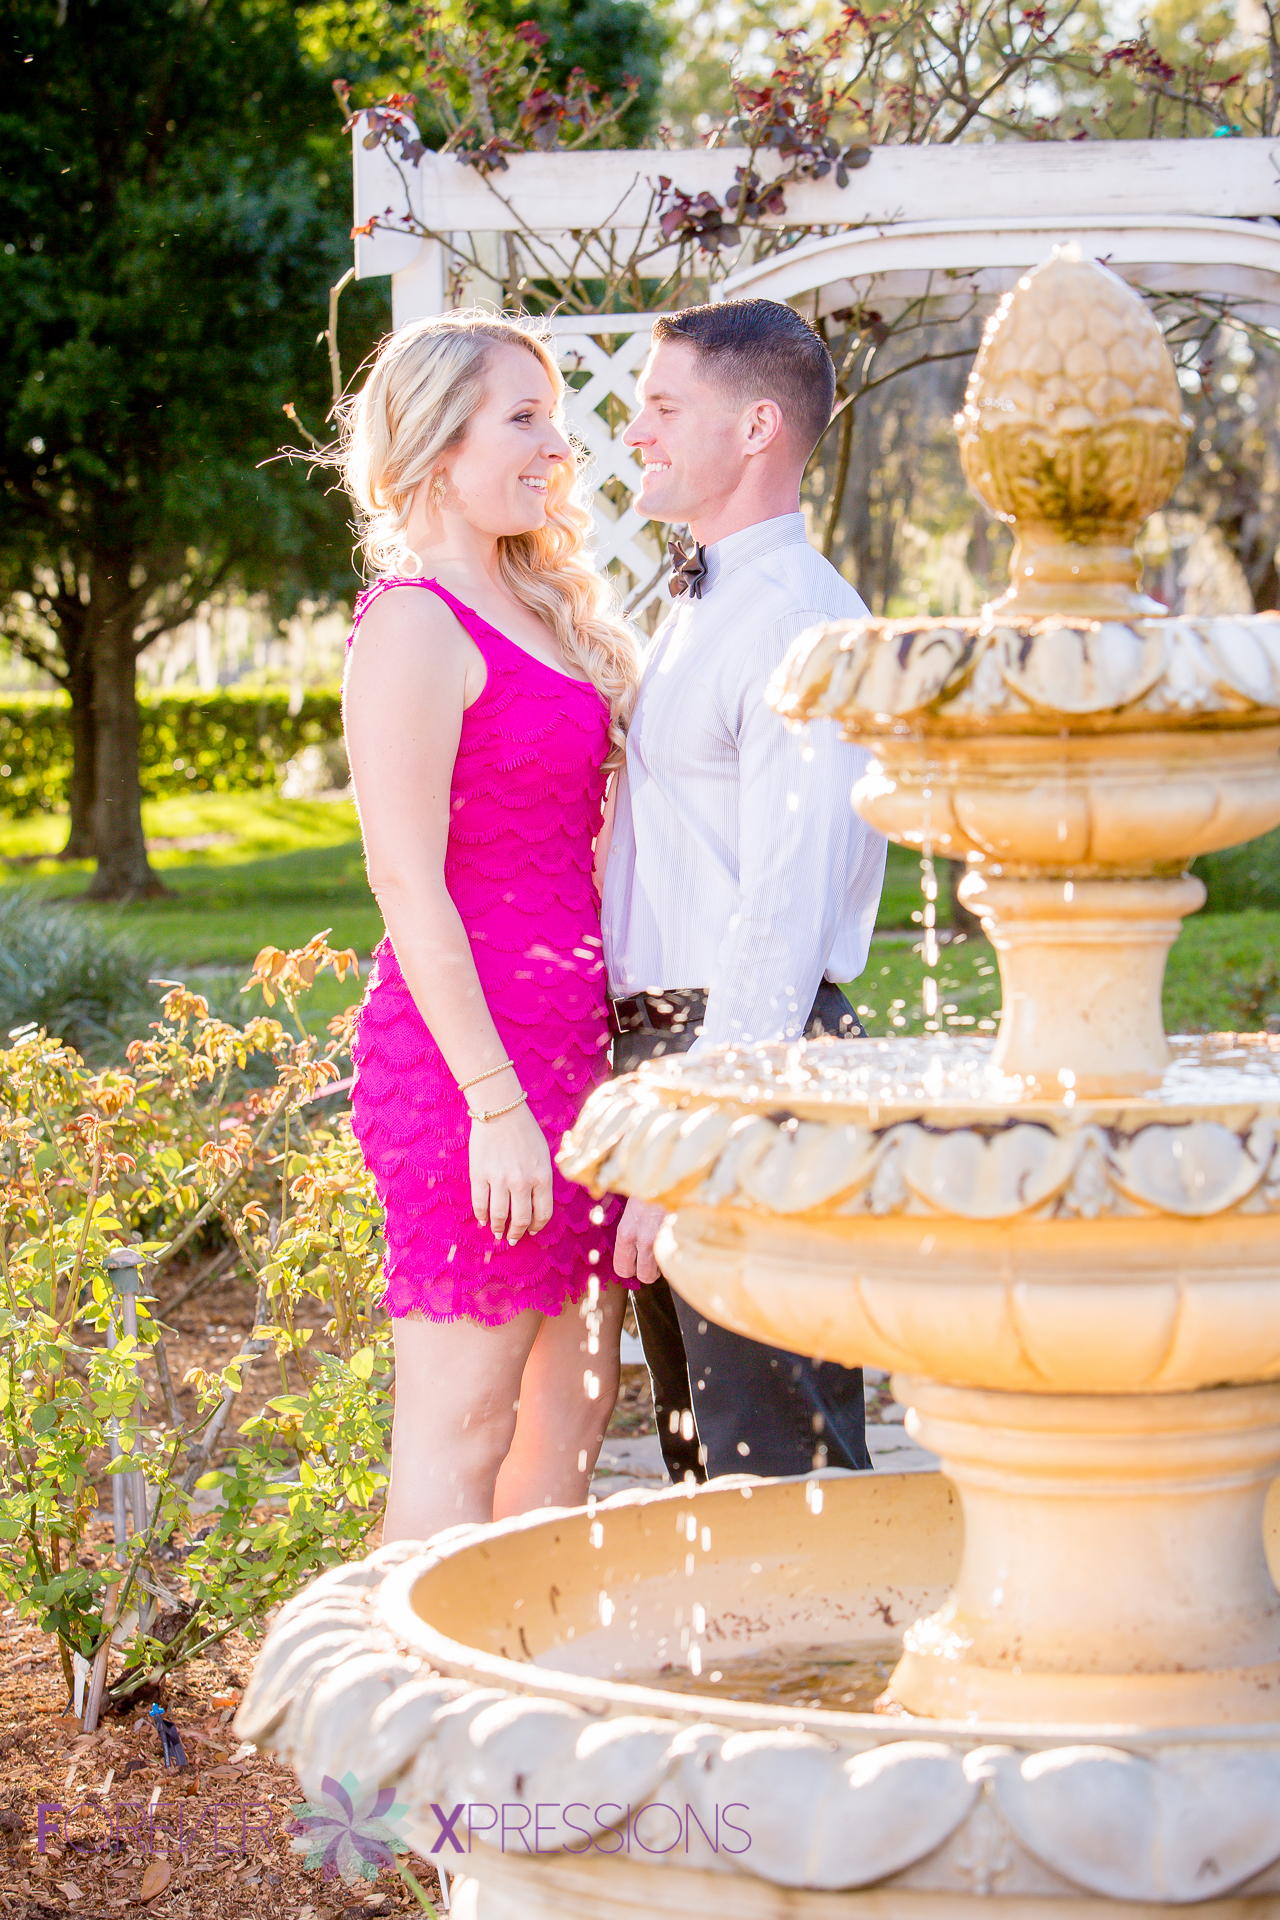 Forever_Xpressions_Engagement_Session_Orlando-1418